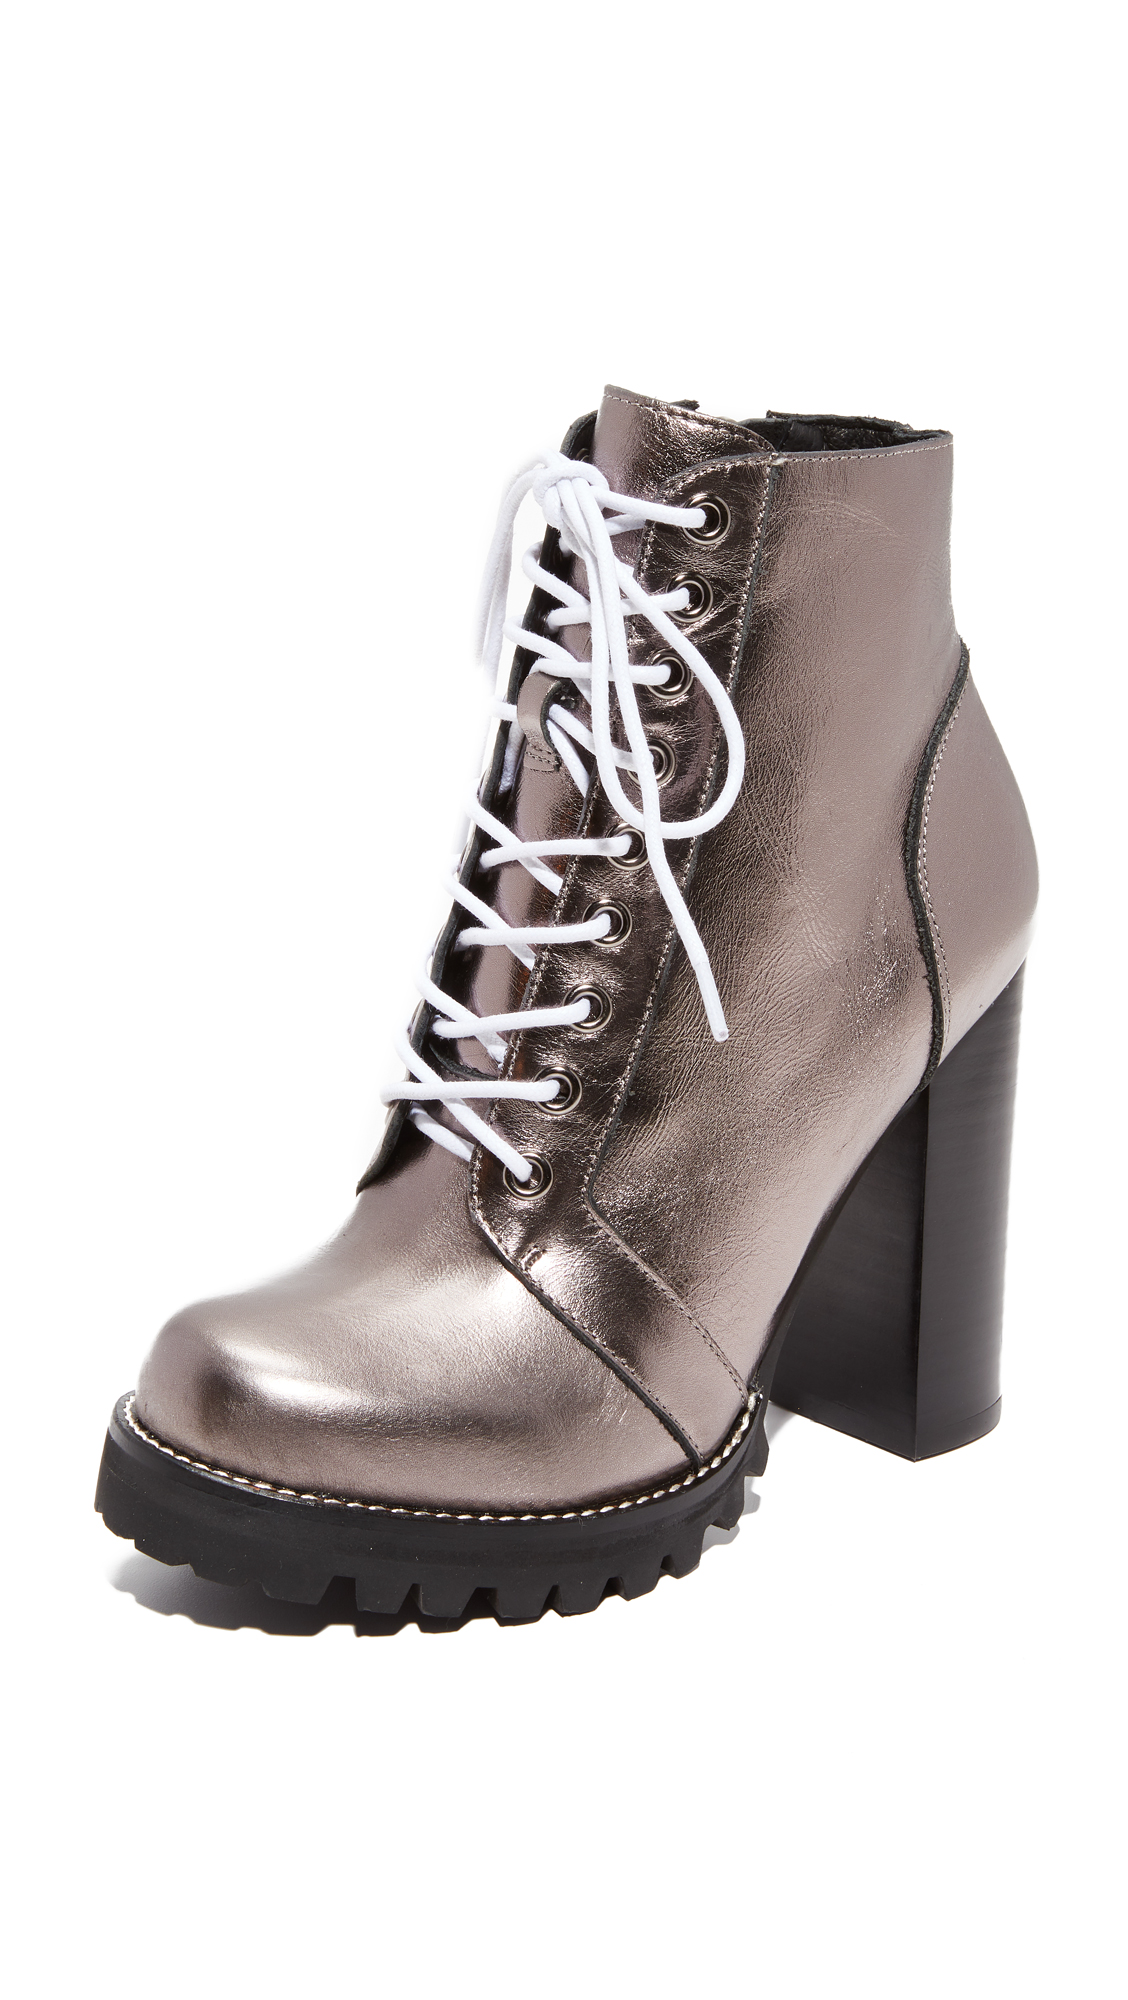 Jeffrey Campbell Legion Lace Up High Heel Booties - Pewter